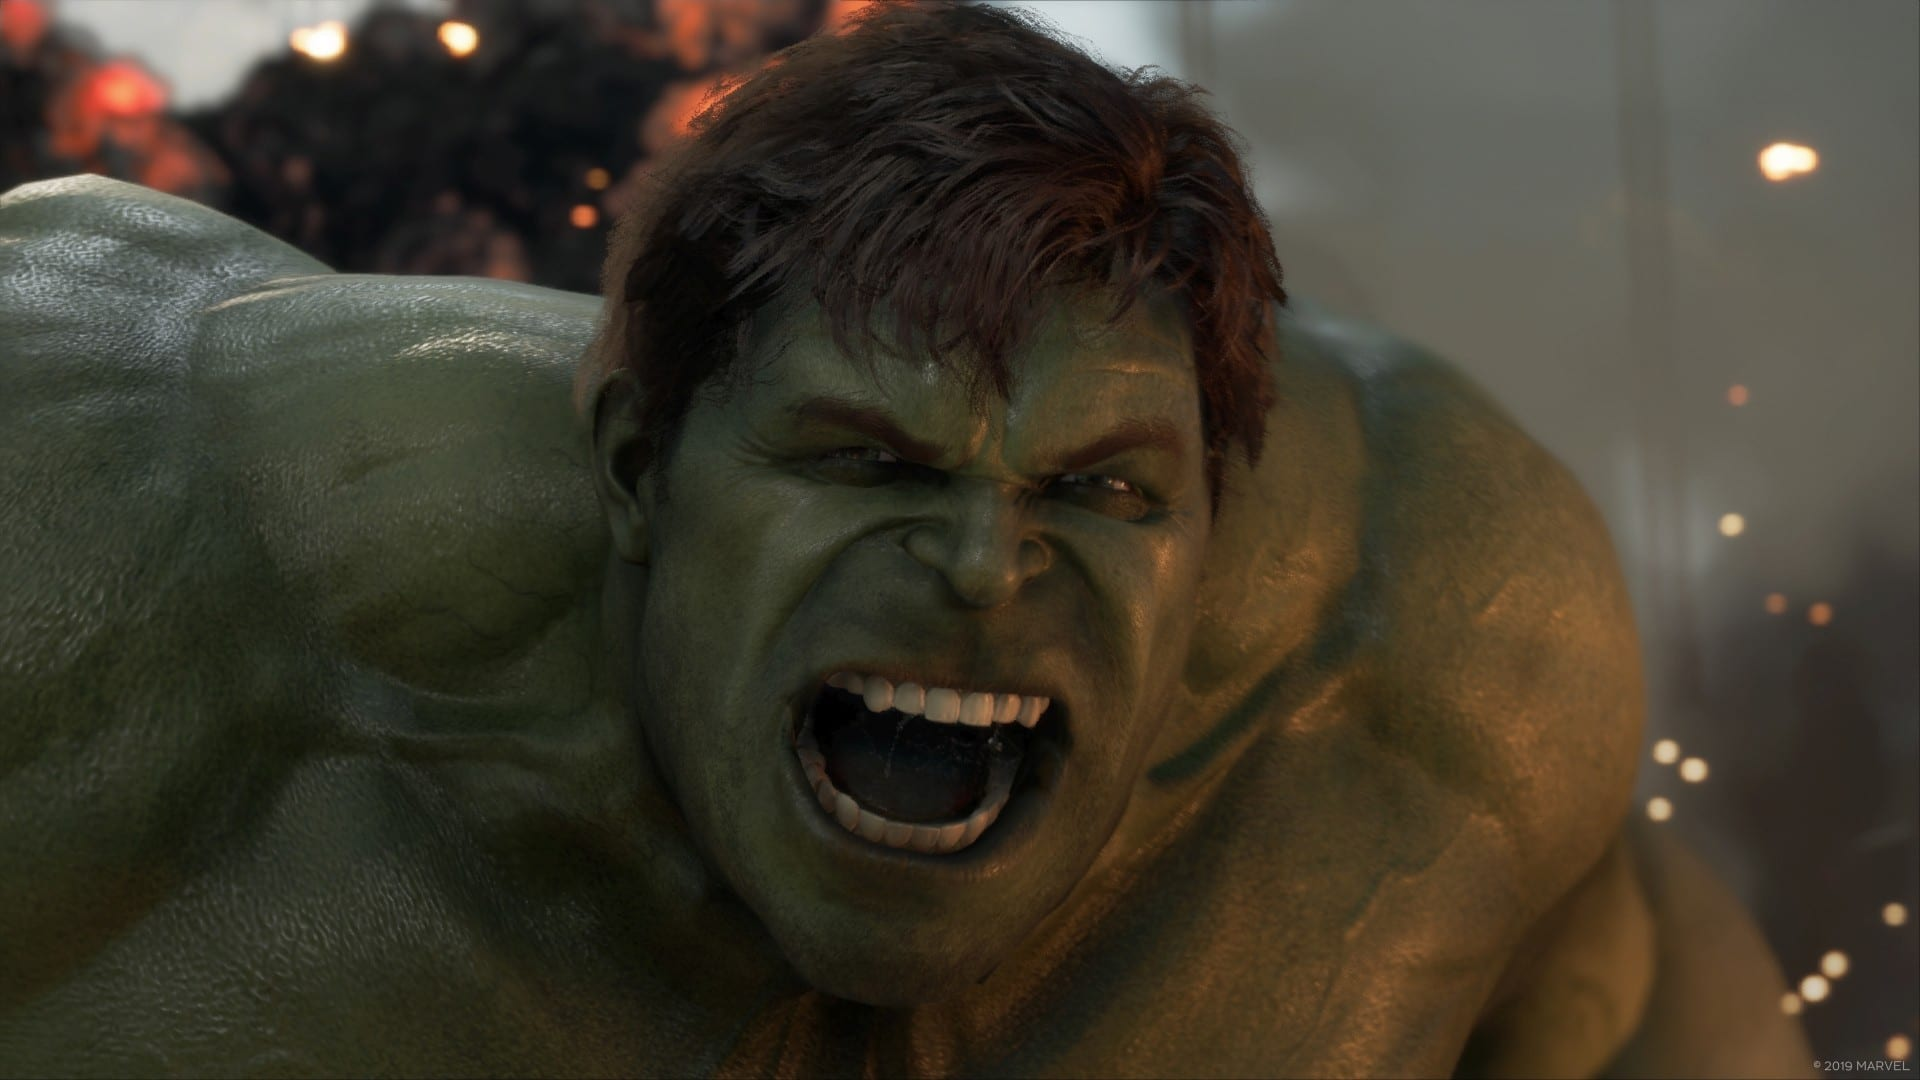 Marvel's Avengers Update Exposes Your IP Address On Screen